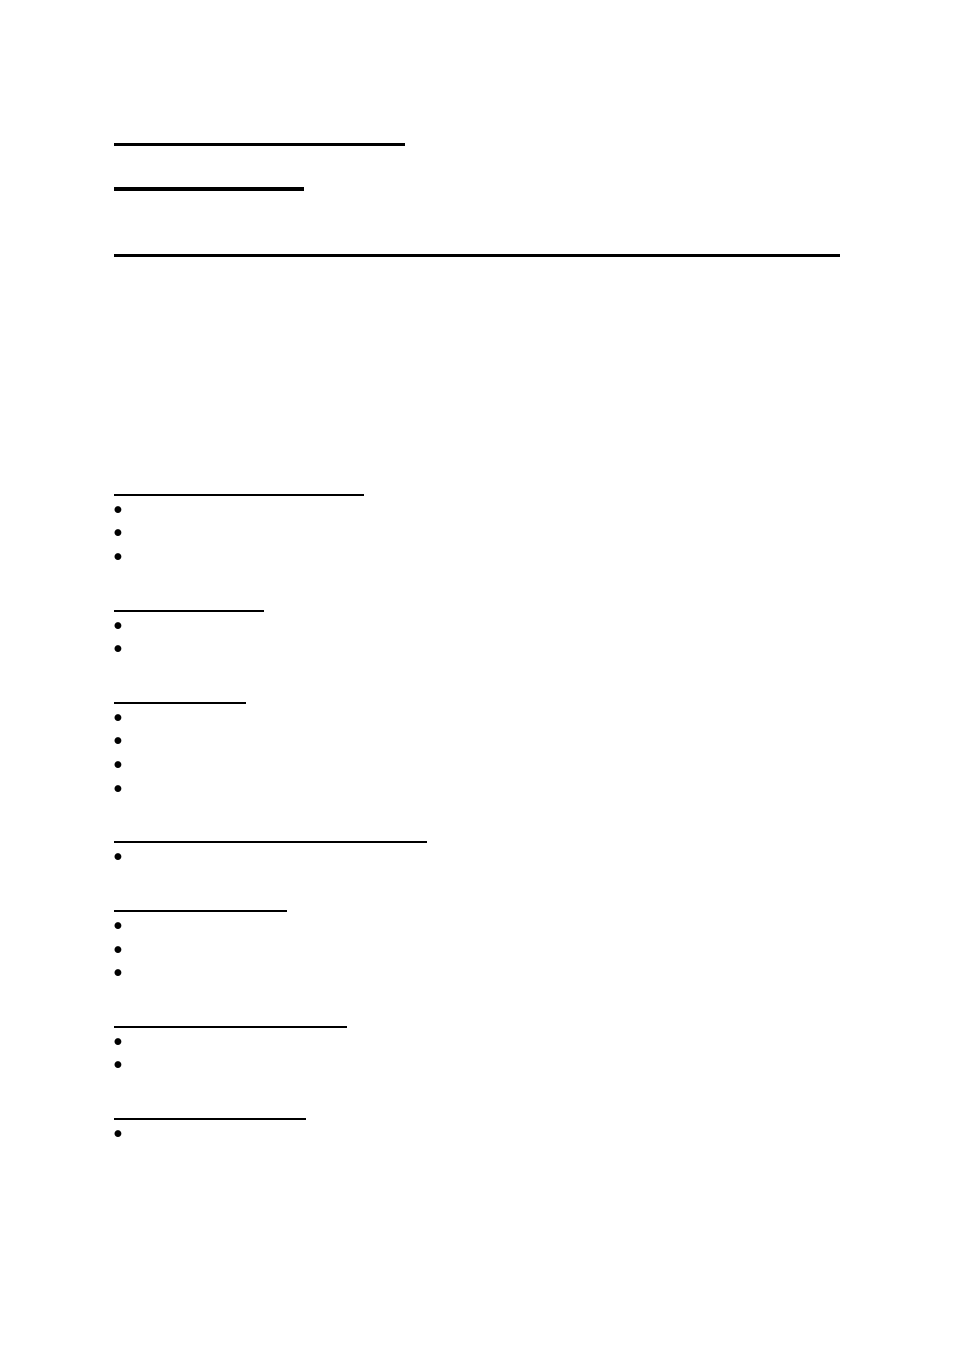 Appendix a troubleshooting, A 1 overview | Haltech F9A User Manual